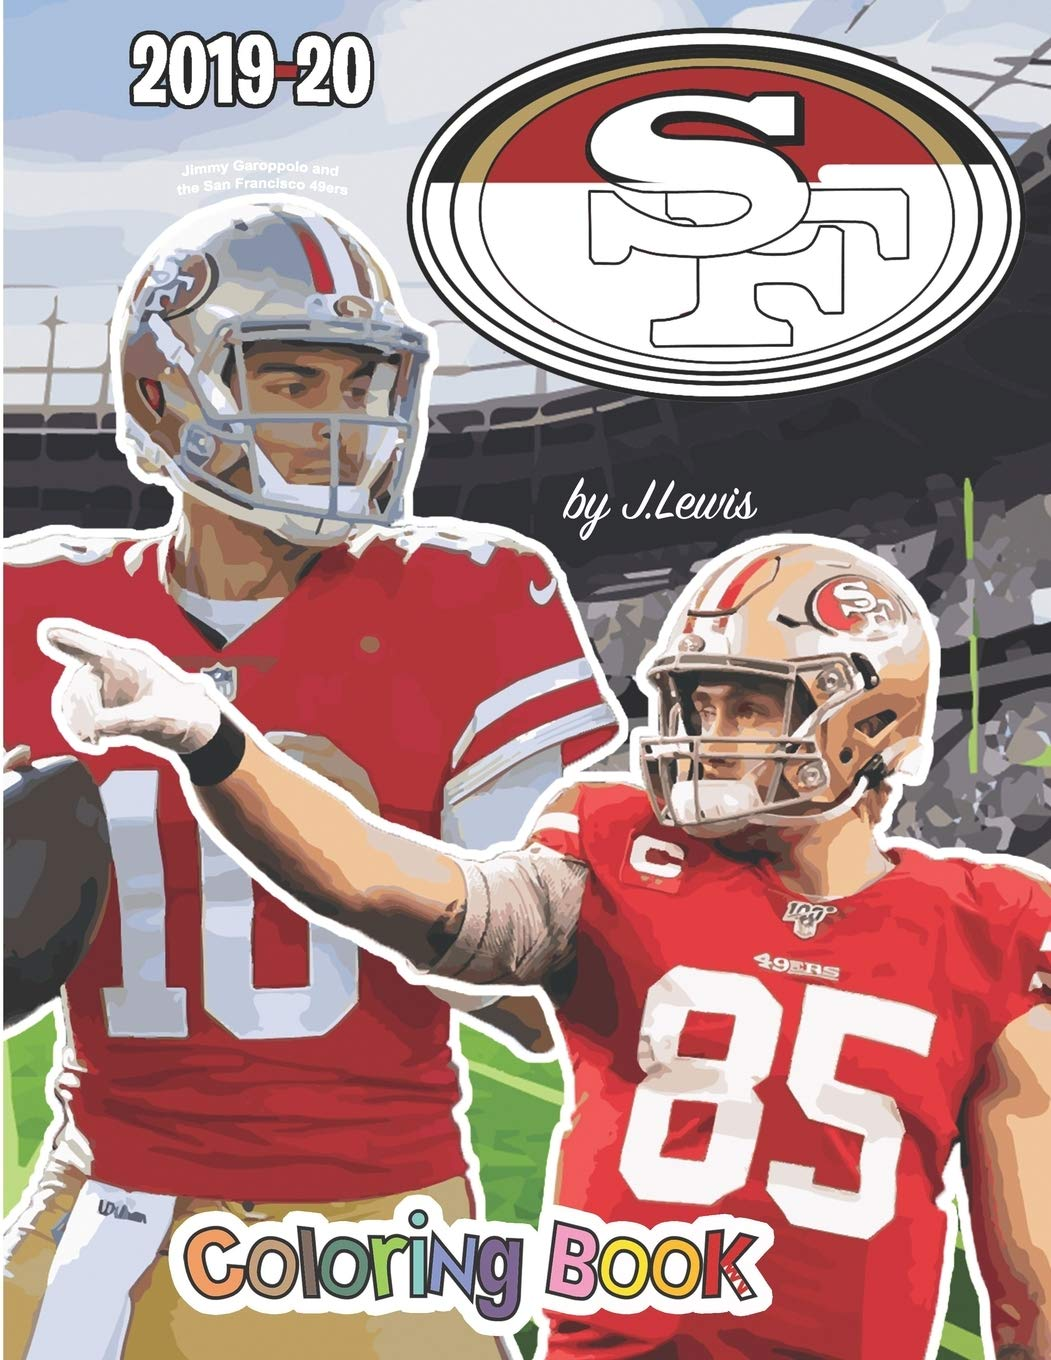 Jimmy Garoppolo And The San Francisco 49ers The Football Coloring And Activity Book 2019 2020 Season Lewis Joel 9798667341307 Amazon Com Books